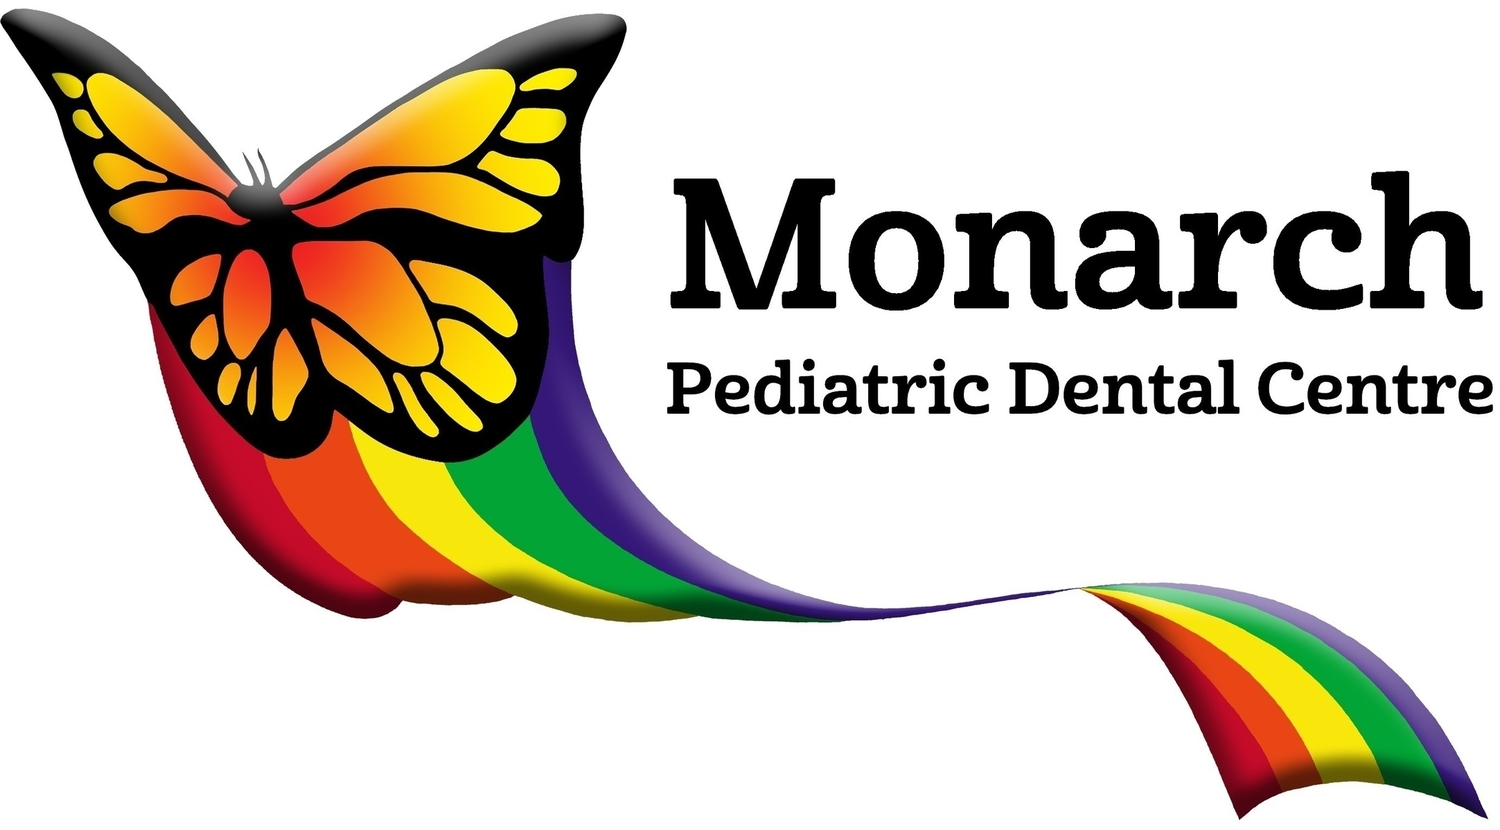 Monarch Pediatric Dental Centre